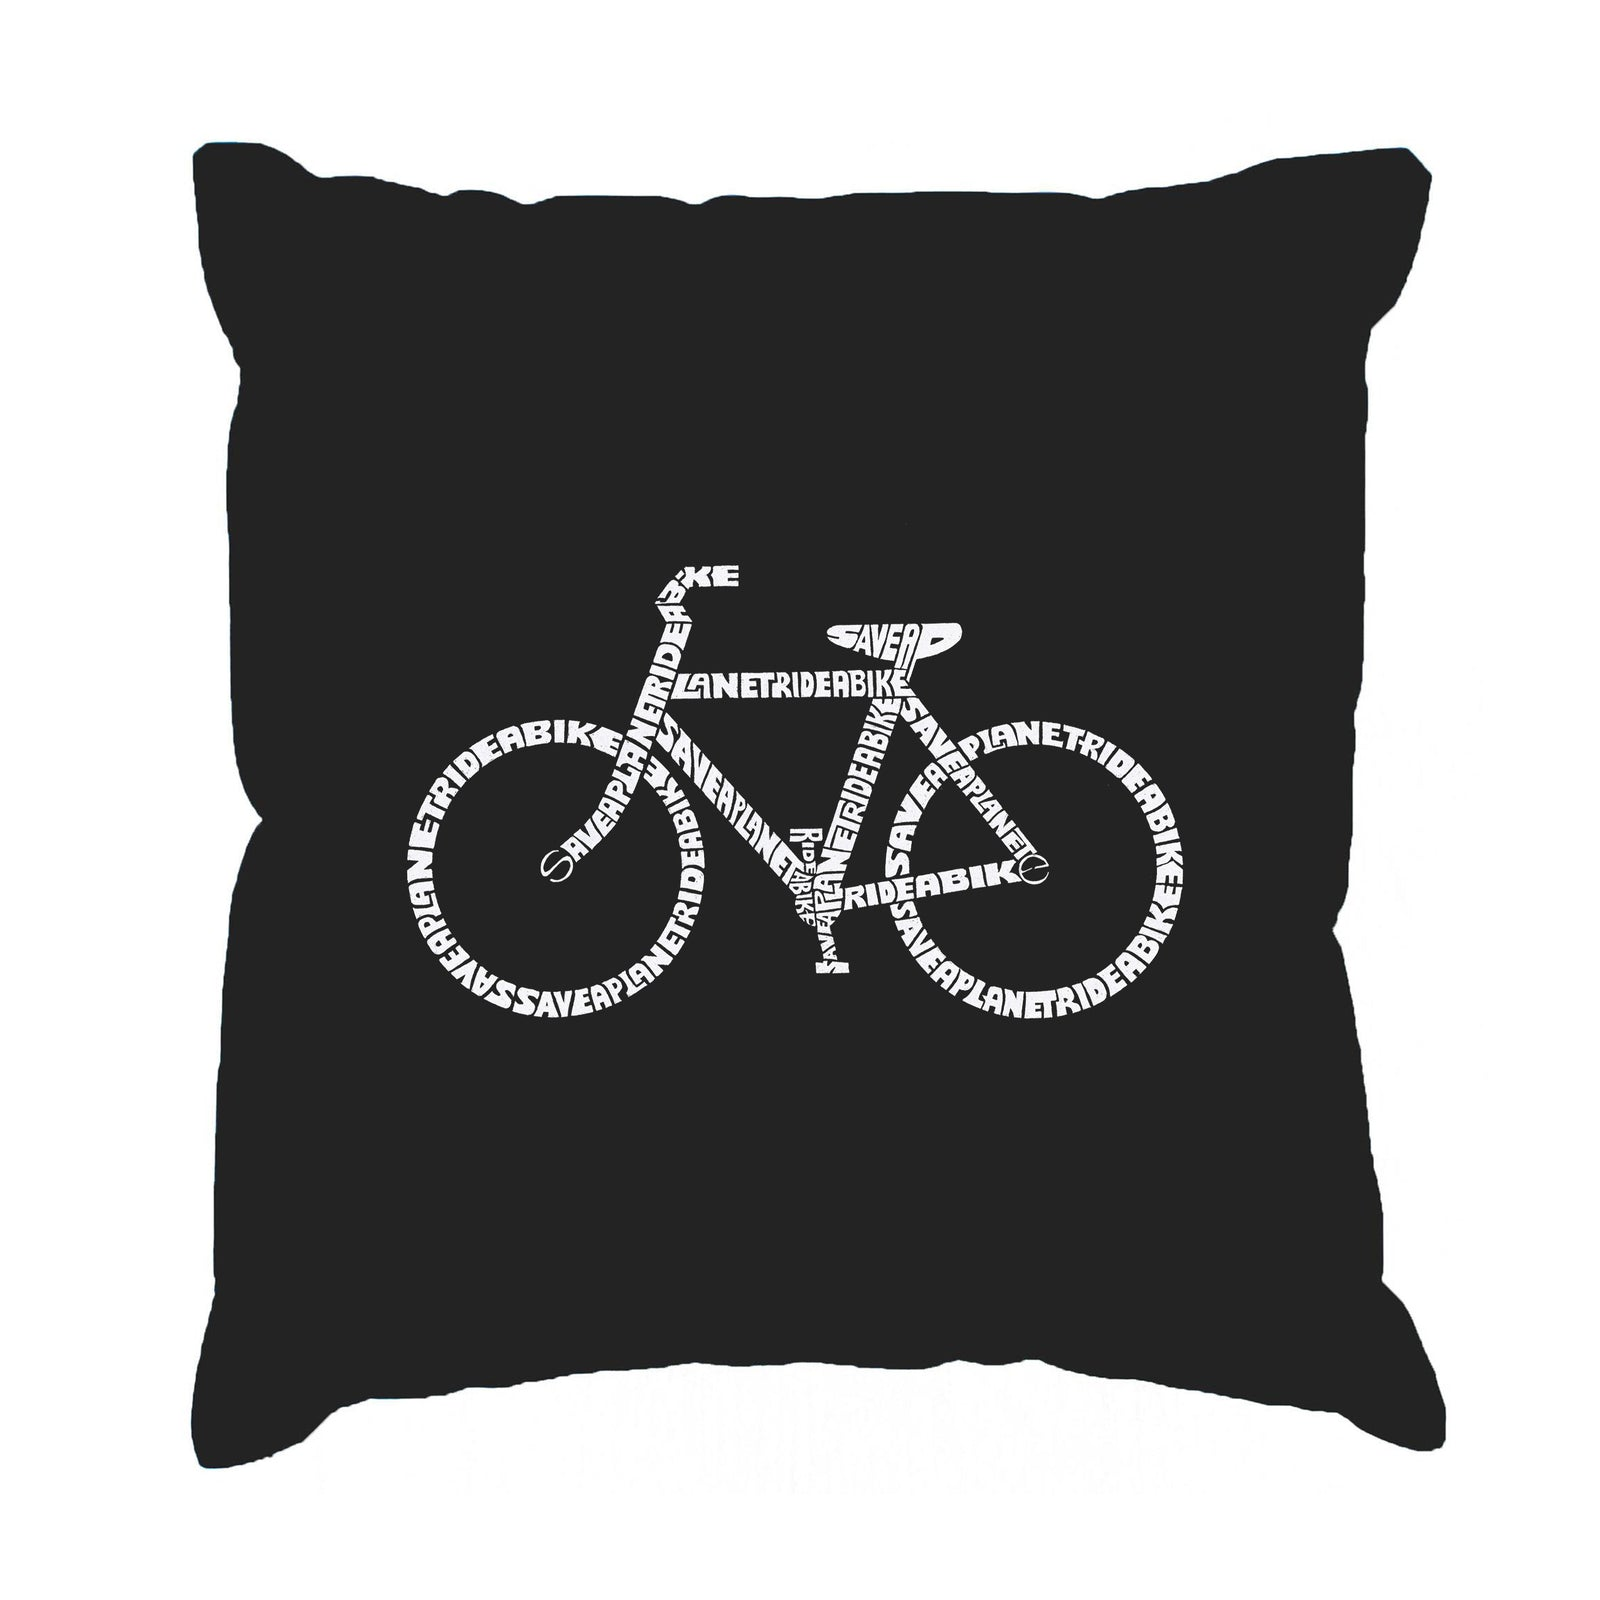 Throw Pillow Cover - SAVE A PLANET, RIDE A BIKE